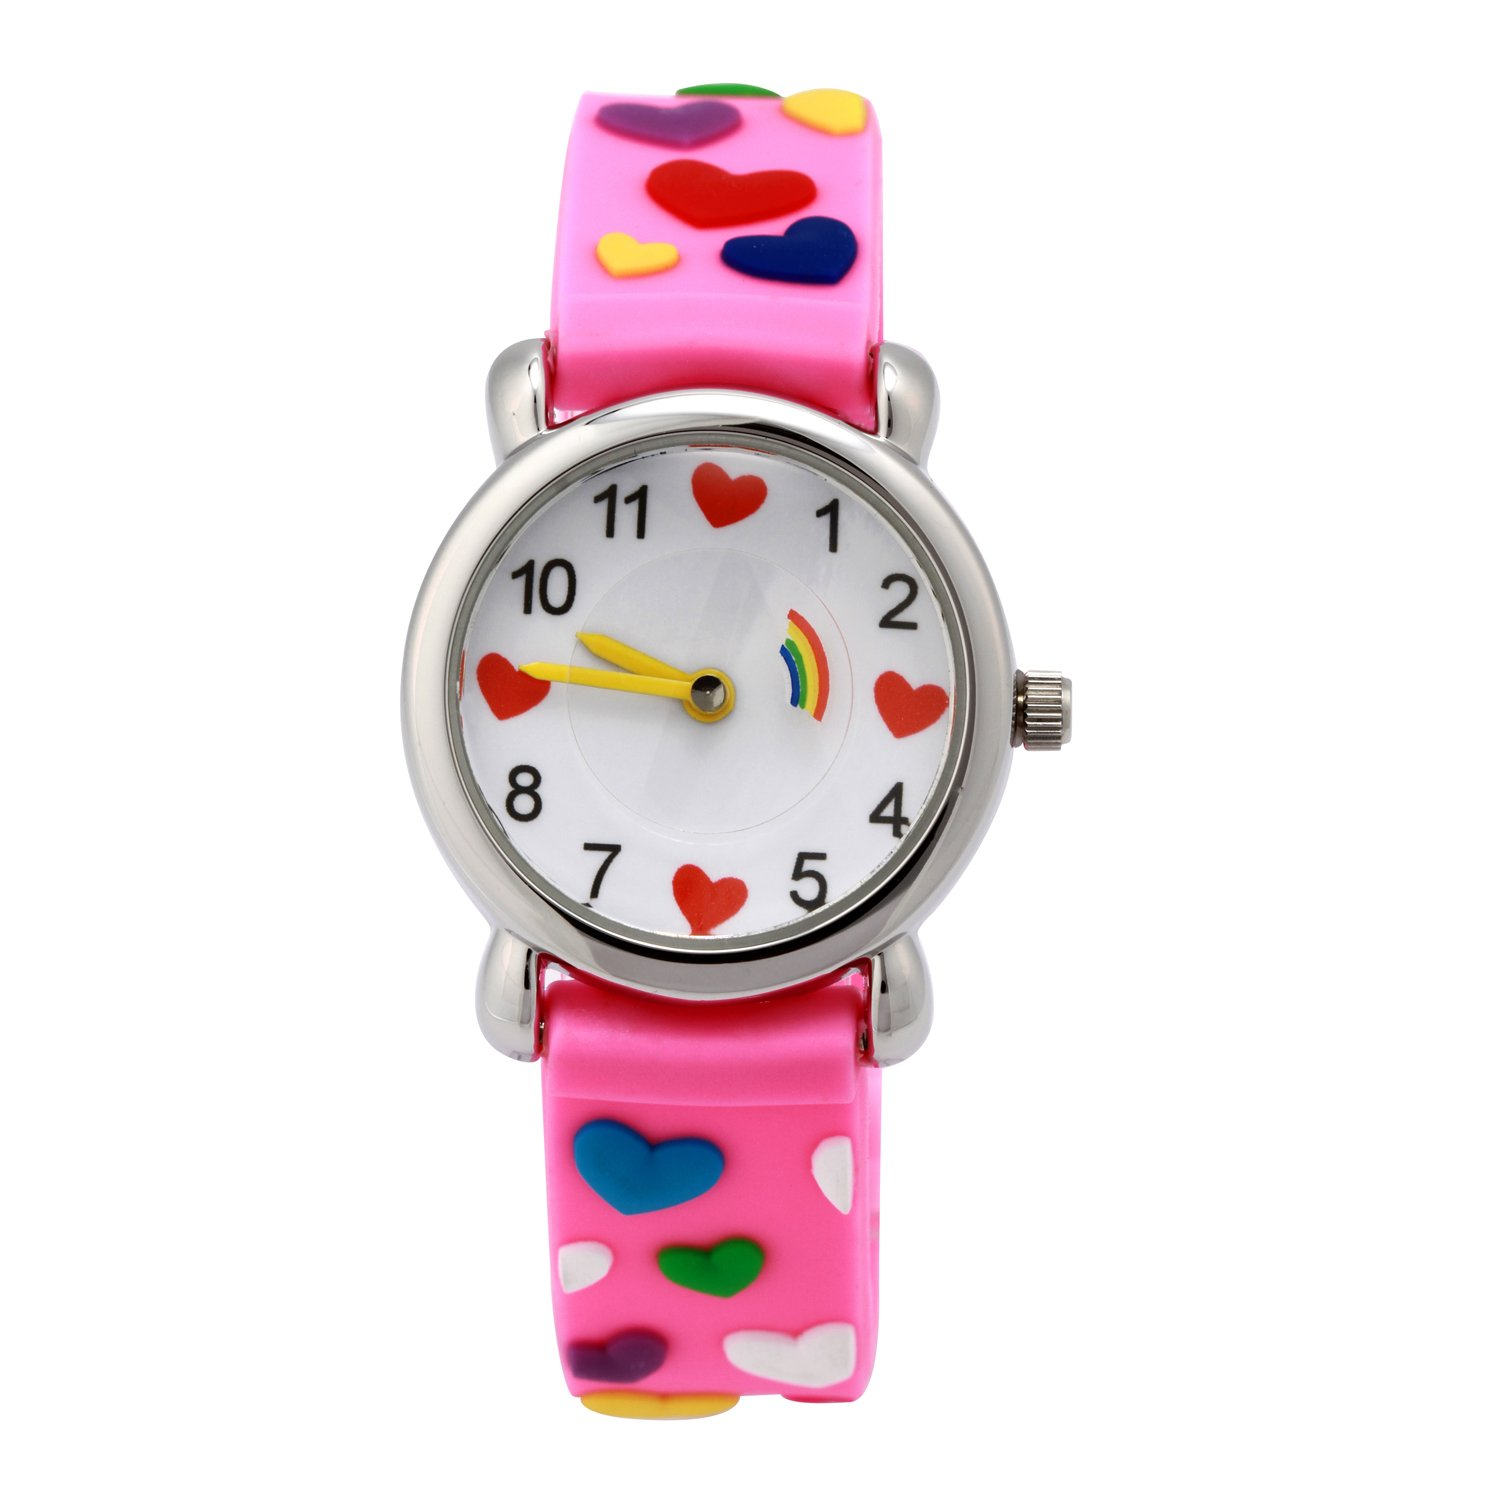 Kids Cartoon Watch, 3D Waterproof Children Wristwatches Cartoon Kids Wrist Watch With Toddler Children Great For Boy And Girl Ages 3-7 Time Teacher (3D Love Rose Red)